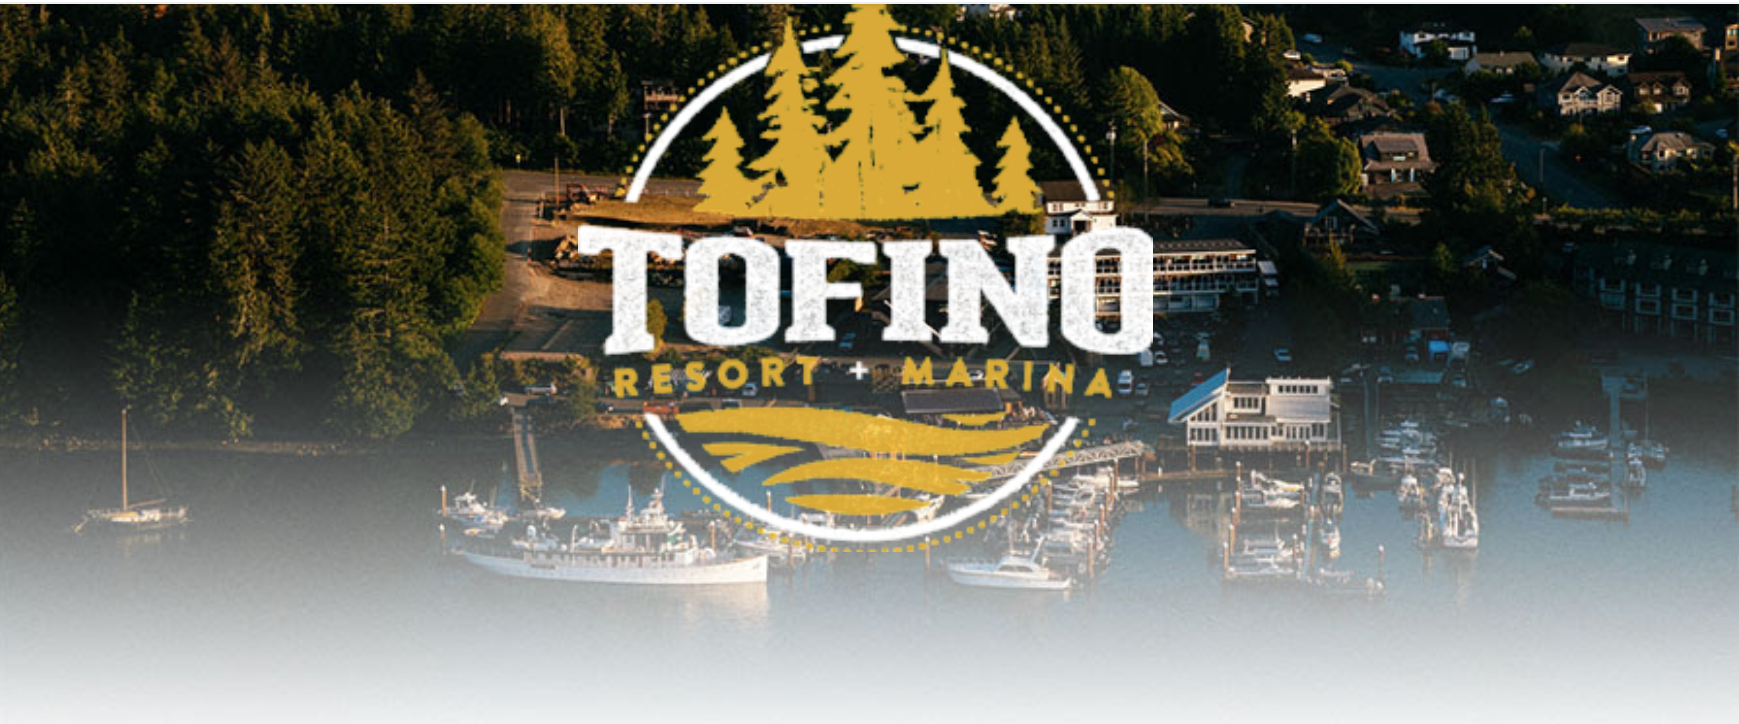 Tofino's time to shine ☀ Adventure Kicks Off at Tofino Resort + Marina